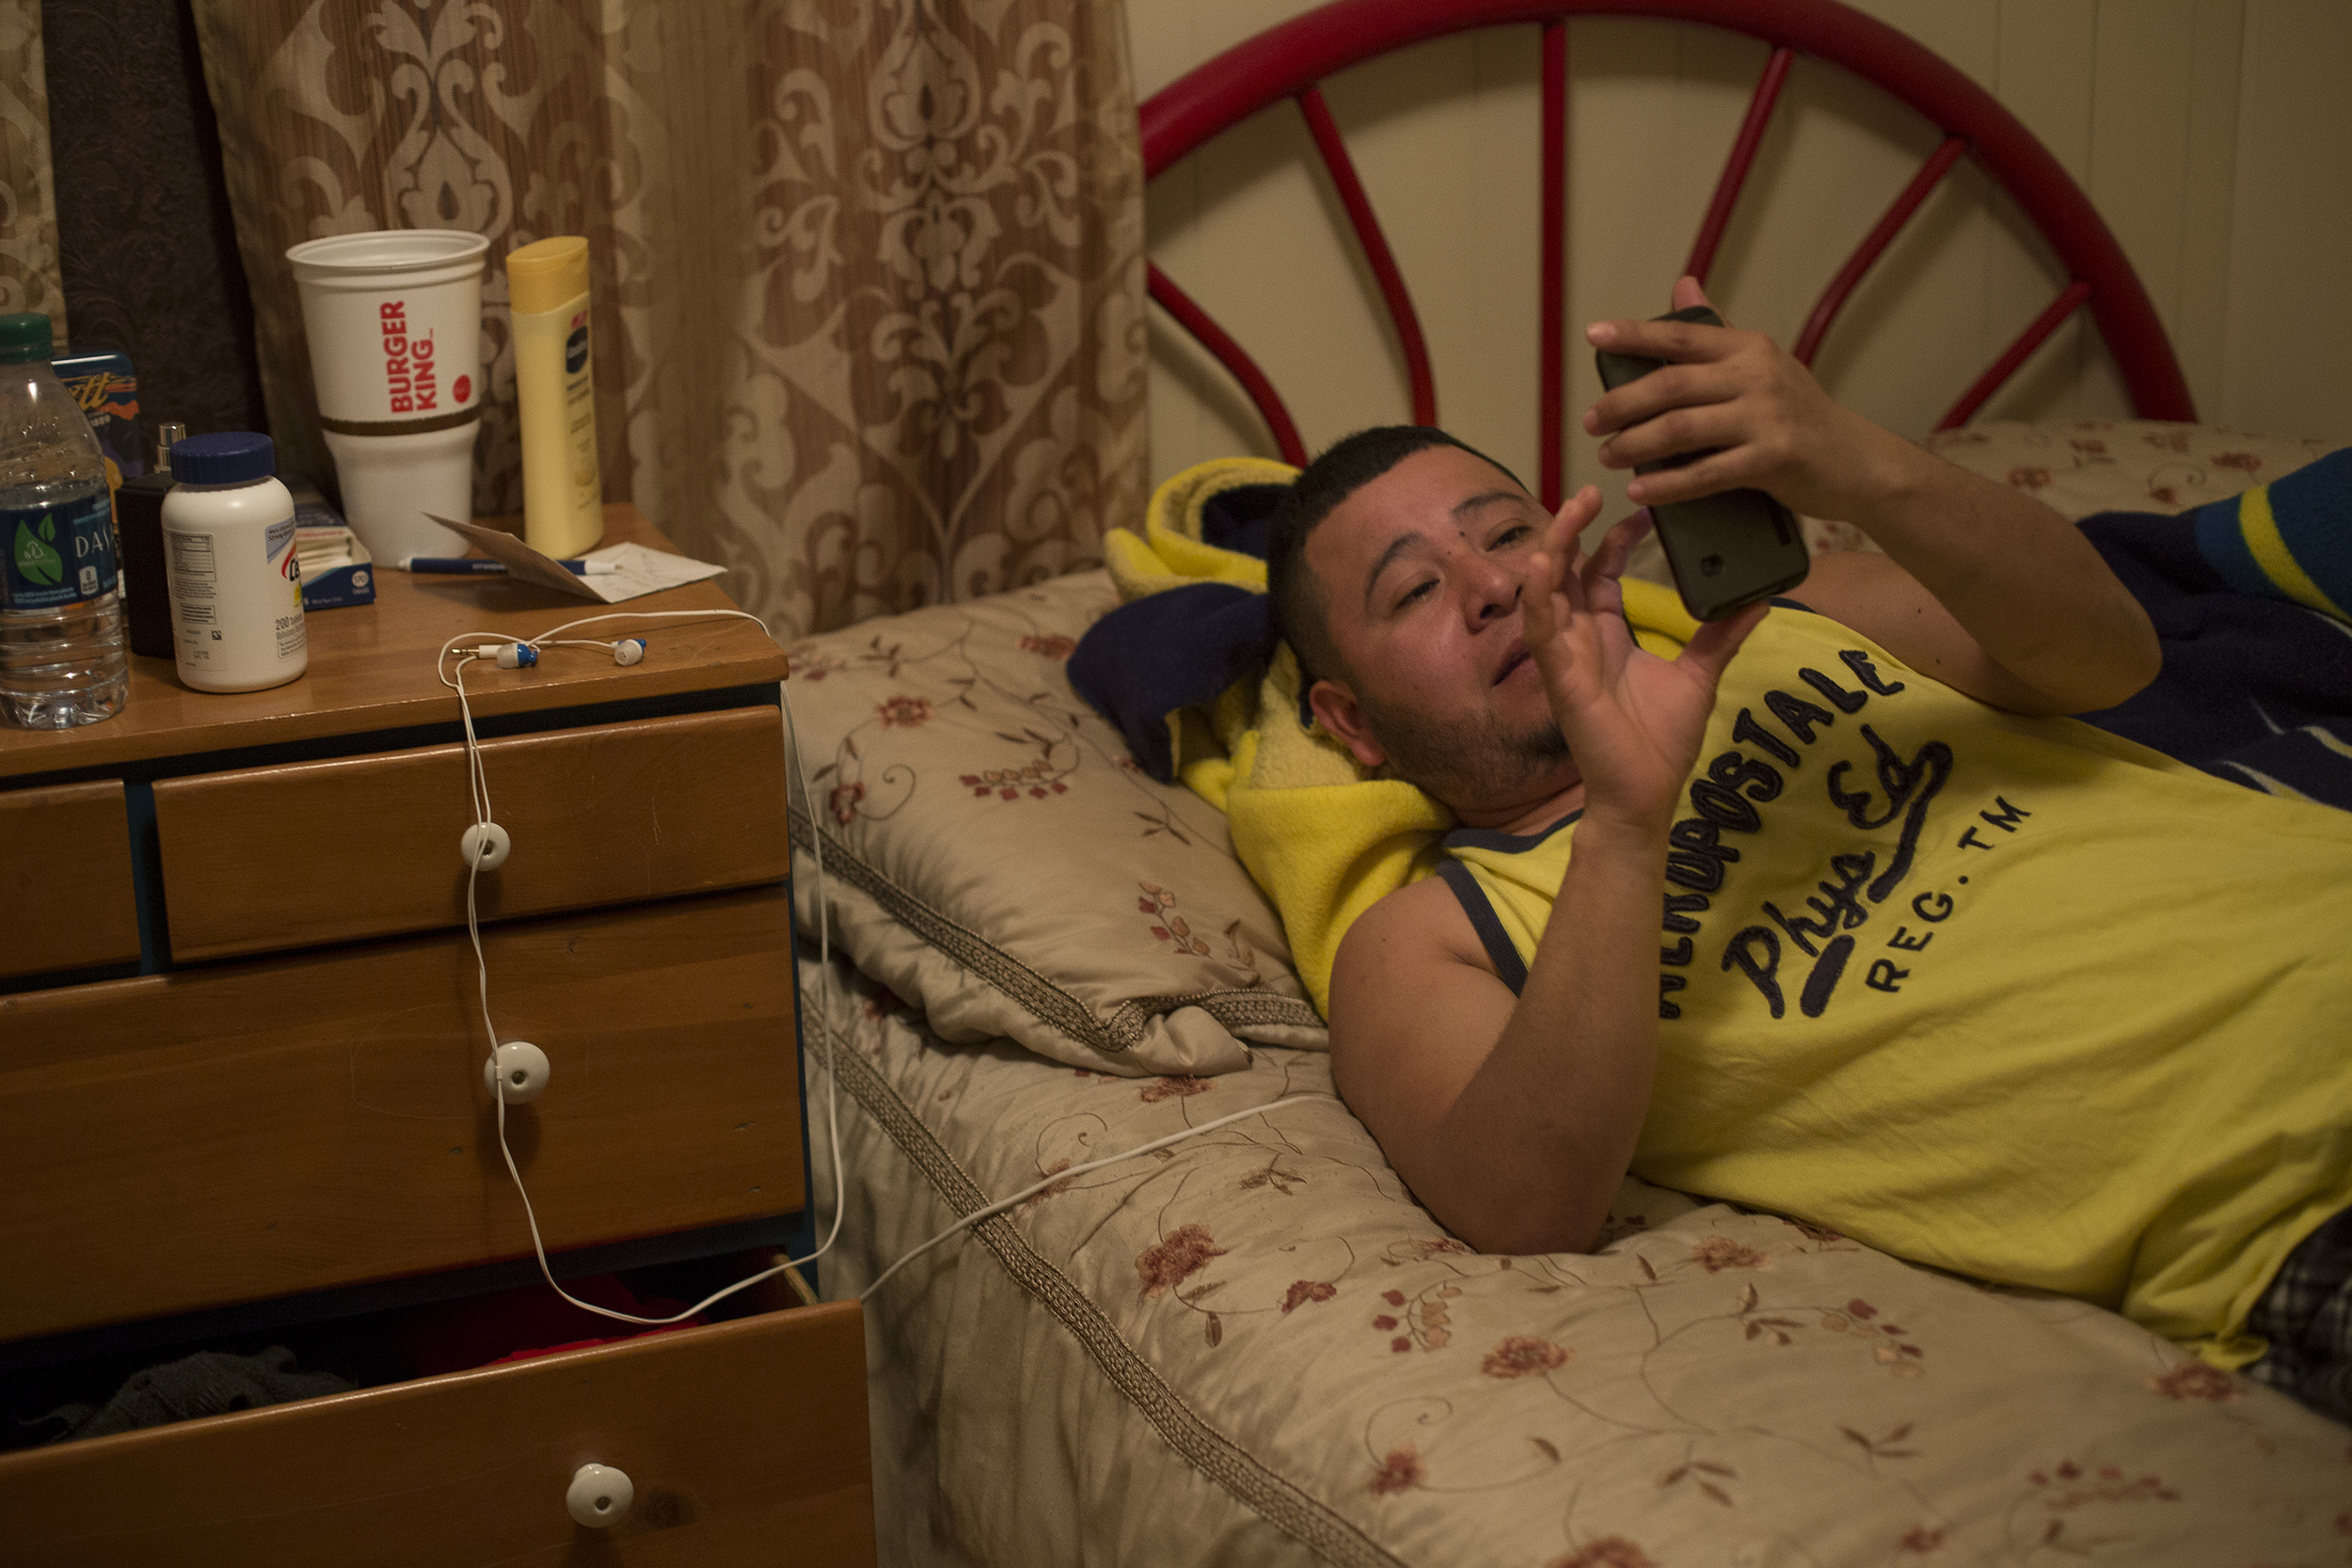 """Alberto, lays in bed looking at Facebook on his phone. He was a police officer in Salina Cruz, Mexico. He came to America with his two sisters by bus for $2,000 each. He lived in North Carolina working multiple jobs before he left on his own to work on the dairy farm. """"Every night I cry, I miss my family, here I have no sisters, parents or friends, so I drink beer every night to fall asleep,"""" said Alberto while looking at a photo of a Christmas tree from the year prior."""